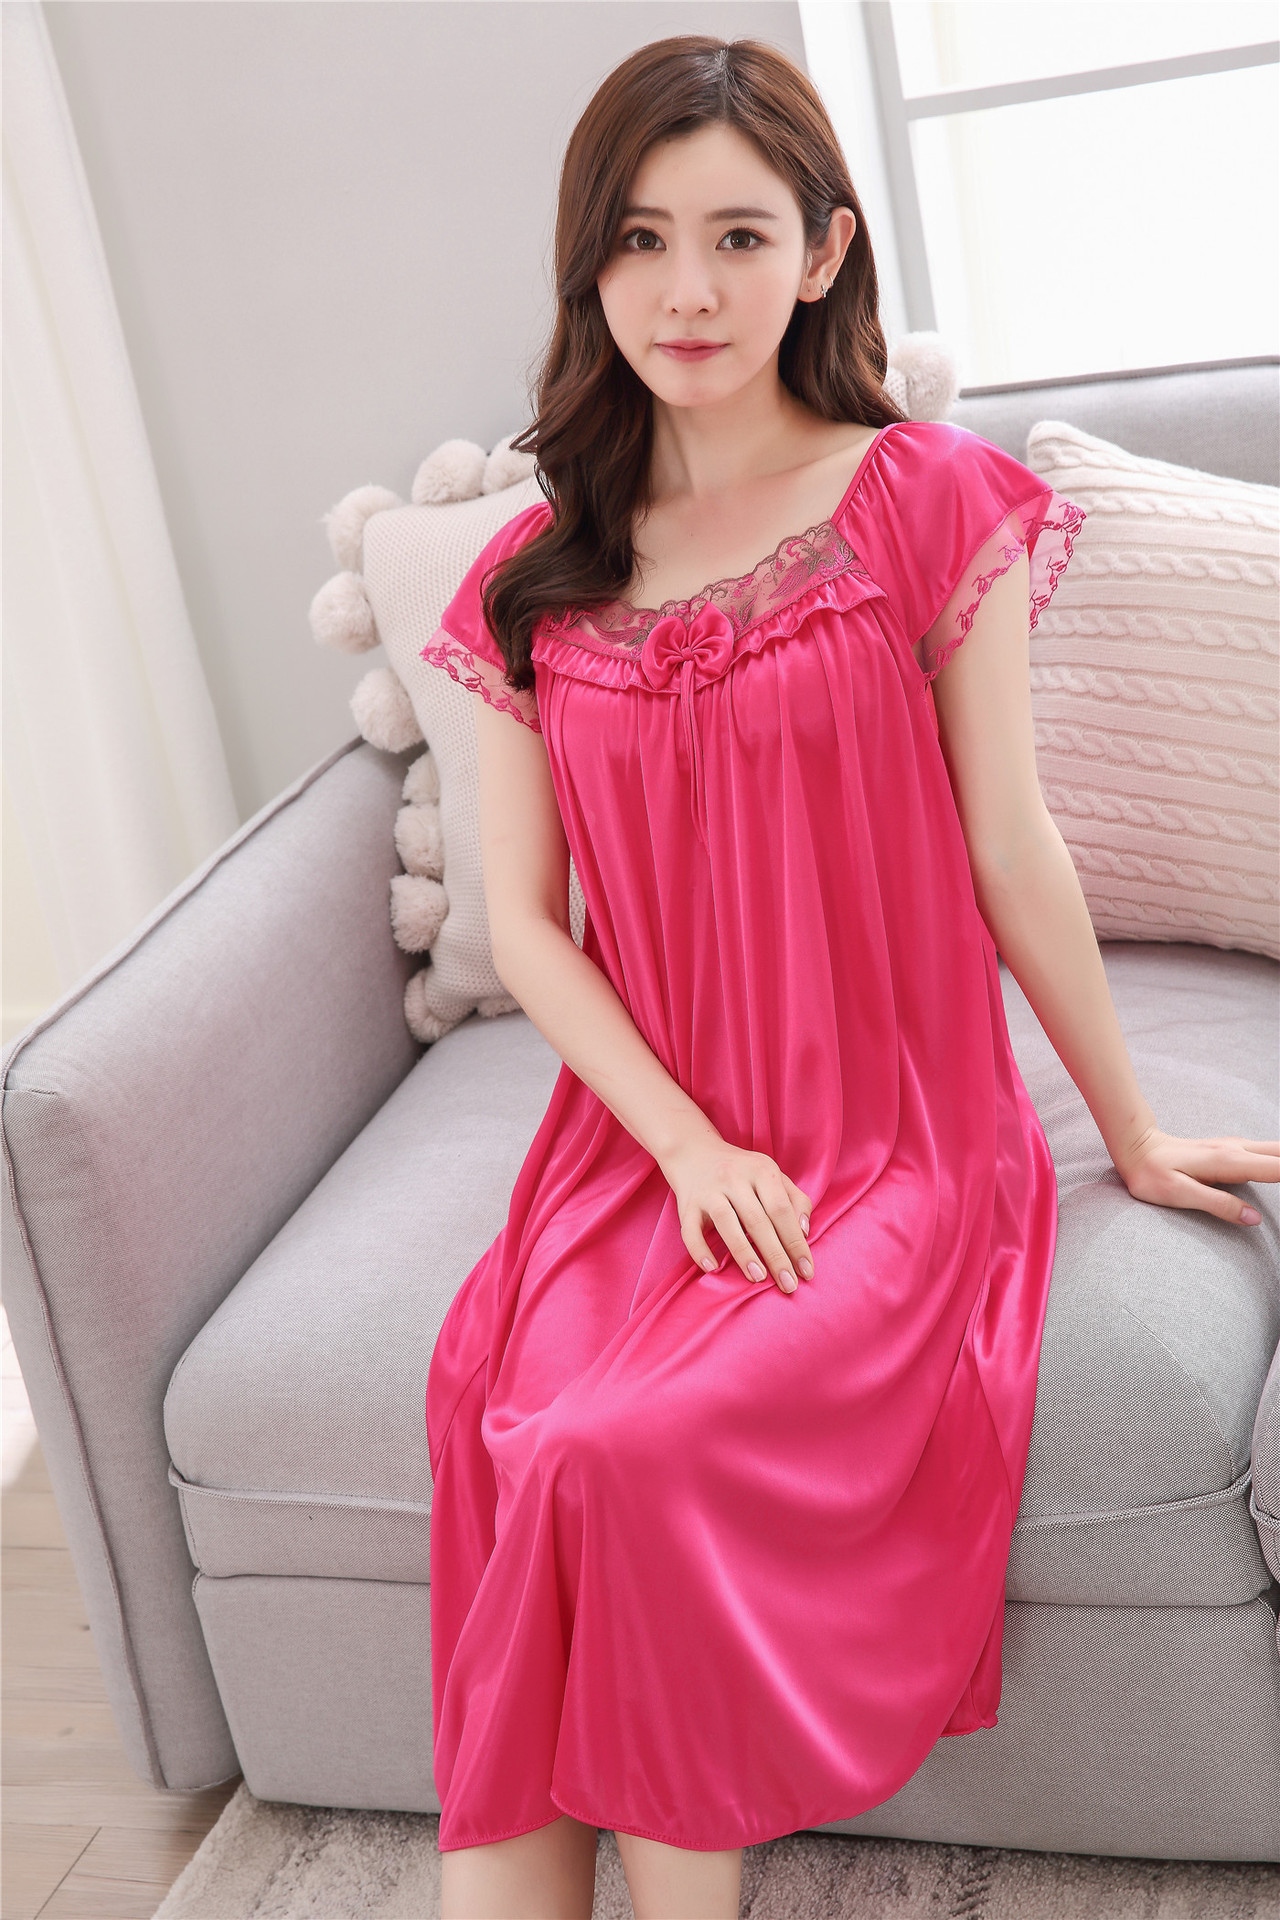 ef9a187464 2018 summer Solid color sexy women ice silk nightgown lady short sleeve  lace sleepwear ladies size fat mm loose long nightdress